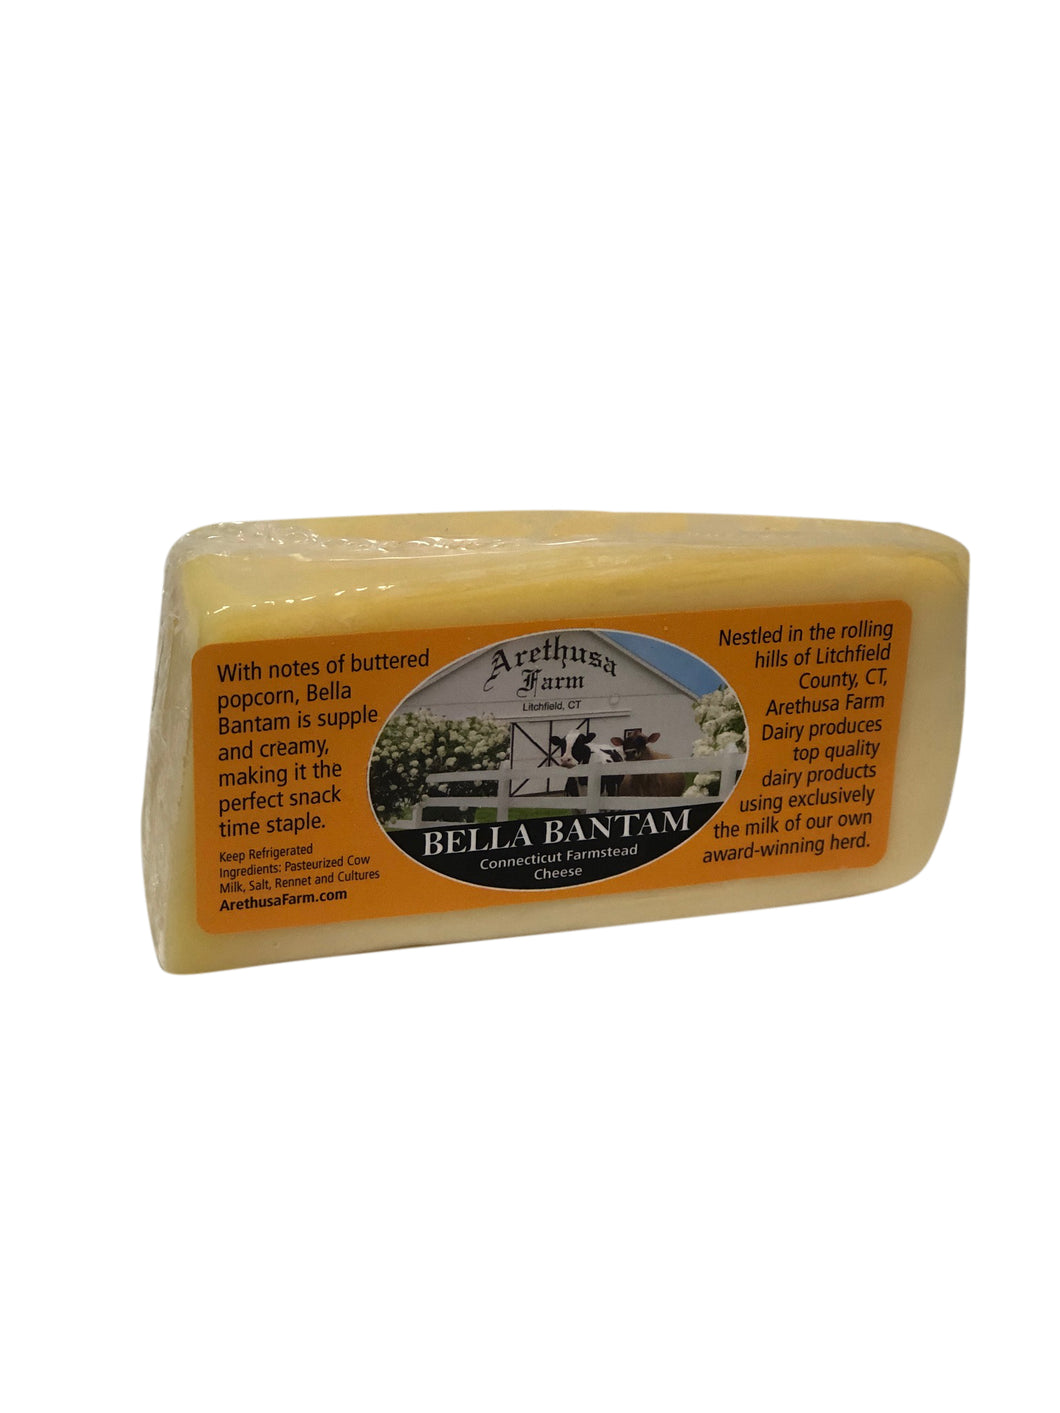 Arethusa Farm Bella Bantam Cheese